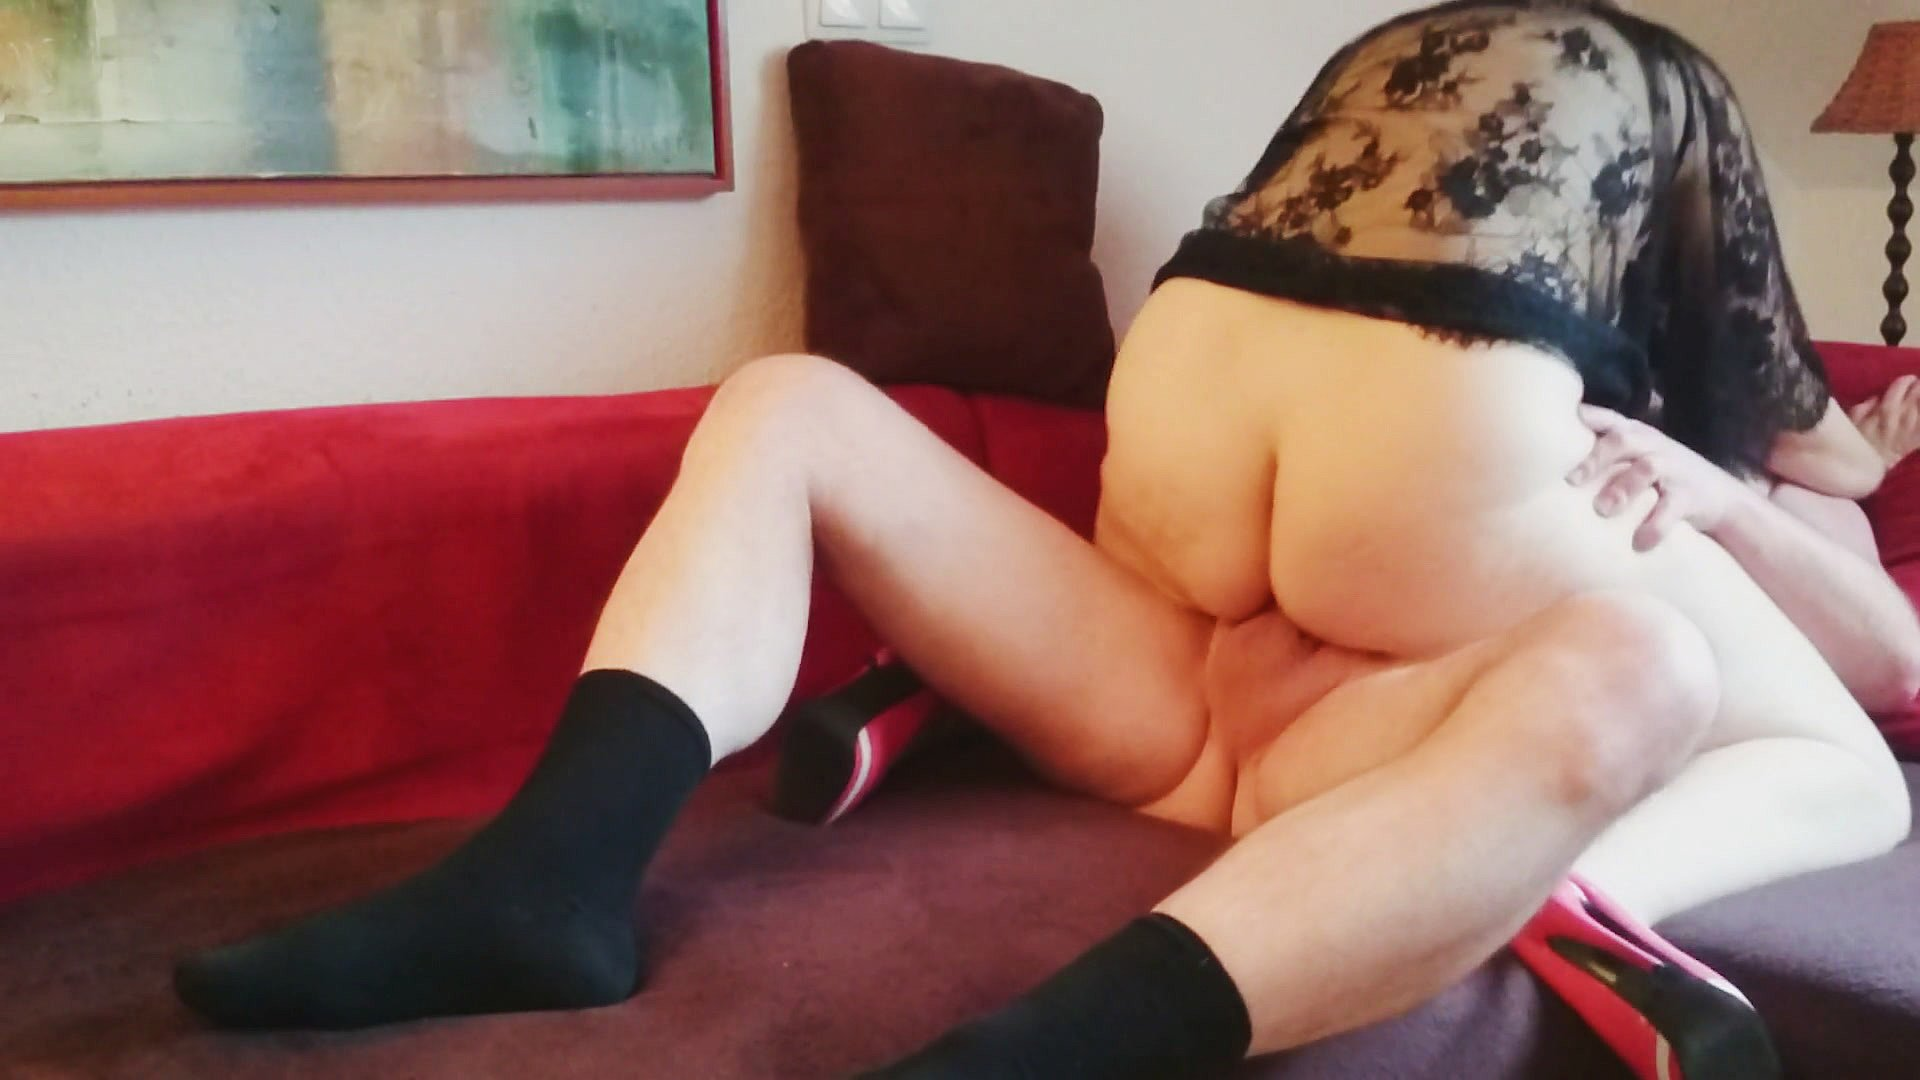 Male masturbation with a sock